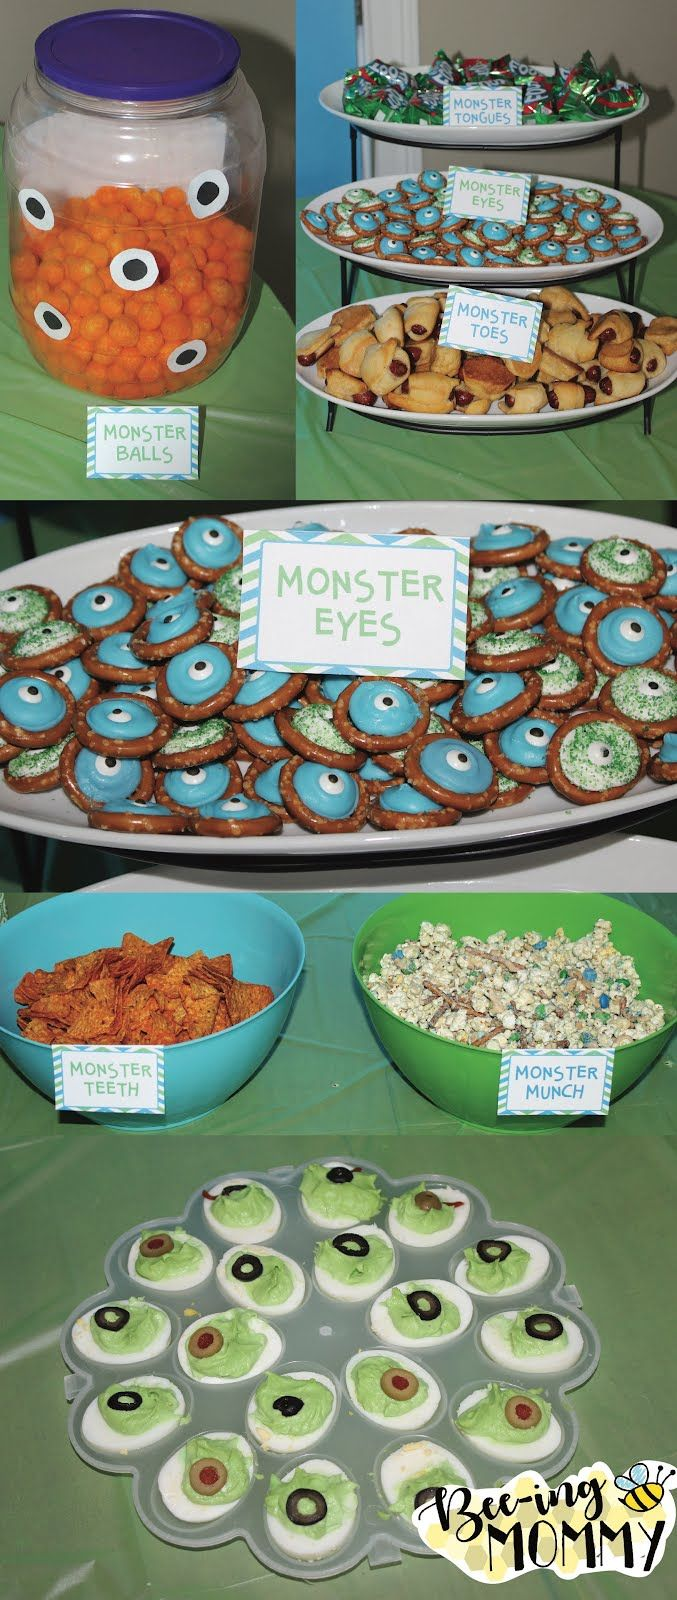 Monster Birthday Party theme food and label ideas - monster tongues, monster eyes, monster teeth